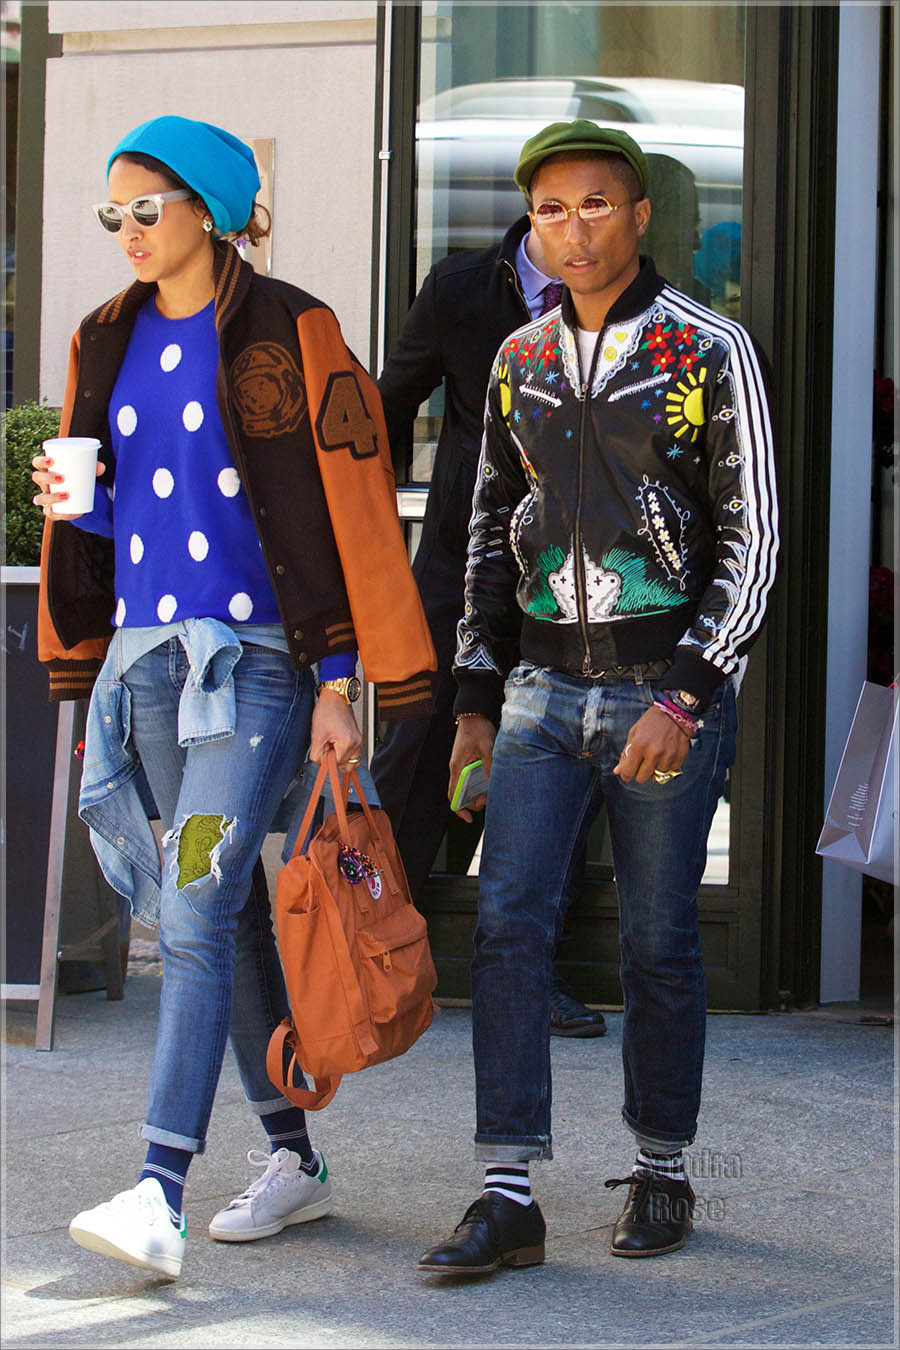 Pharrell Williams and Helen Lasichanh out and about in SoHo